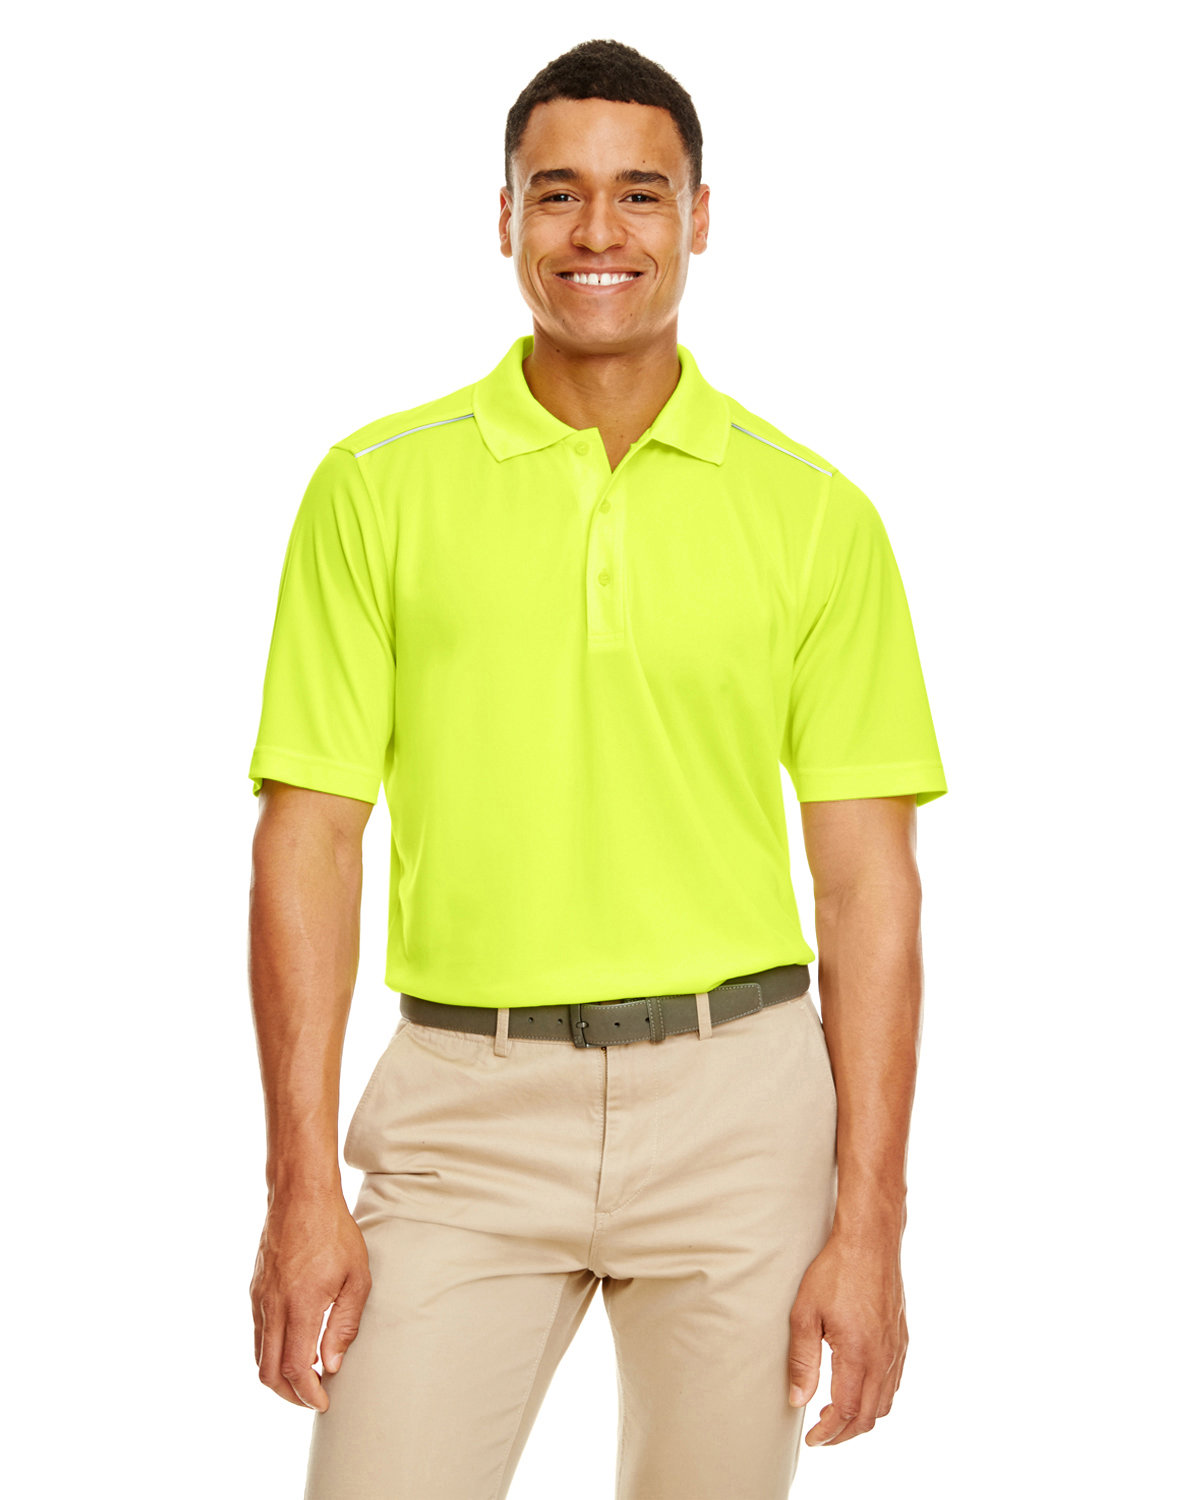 Core 365 Men's Radiant Performance Piqué Polo withReflective Piping SAFETY YELLOW